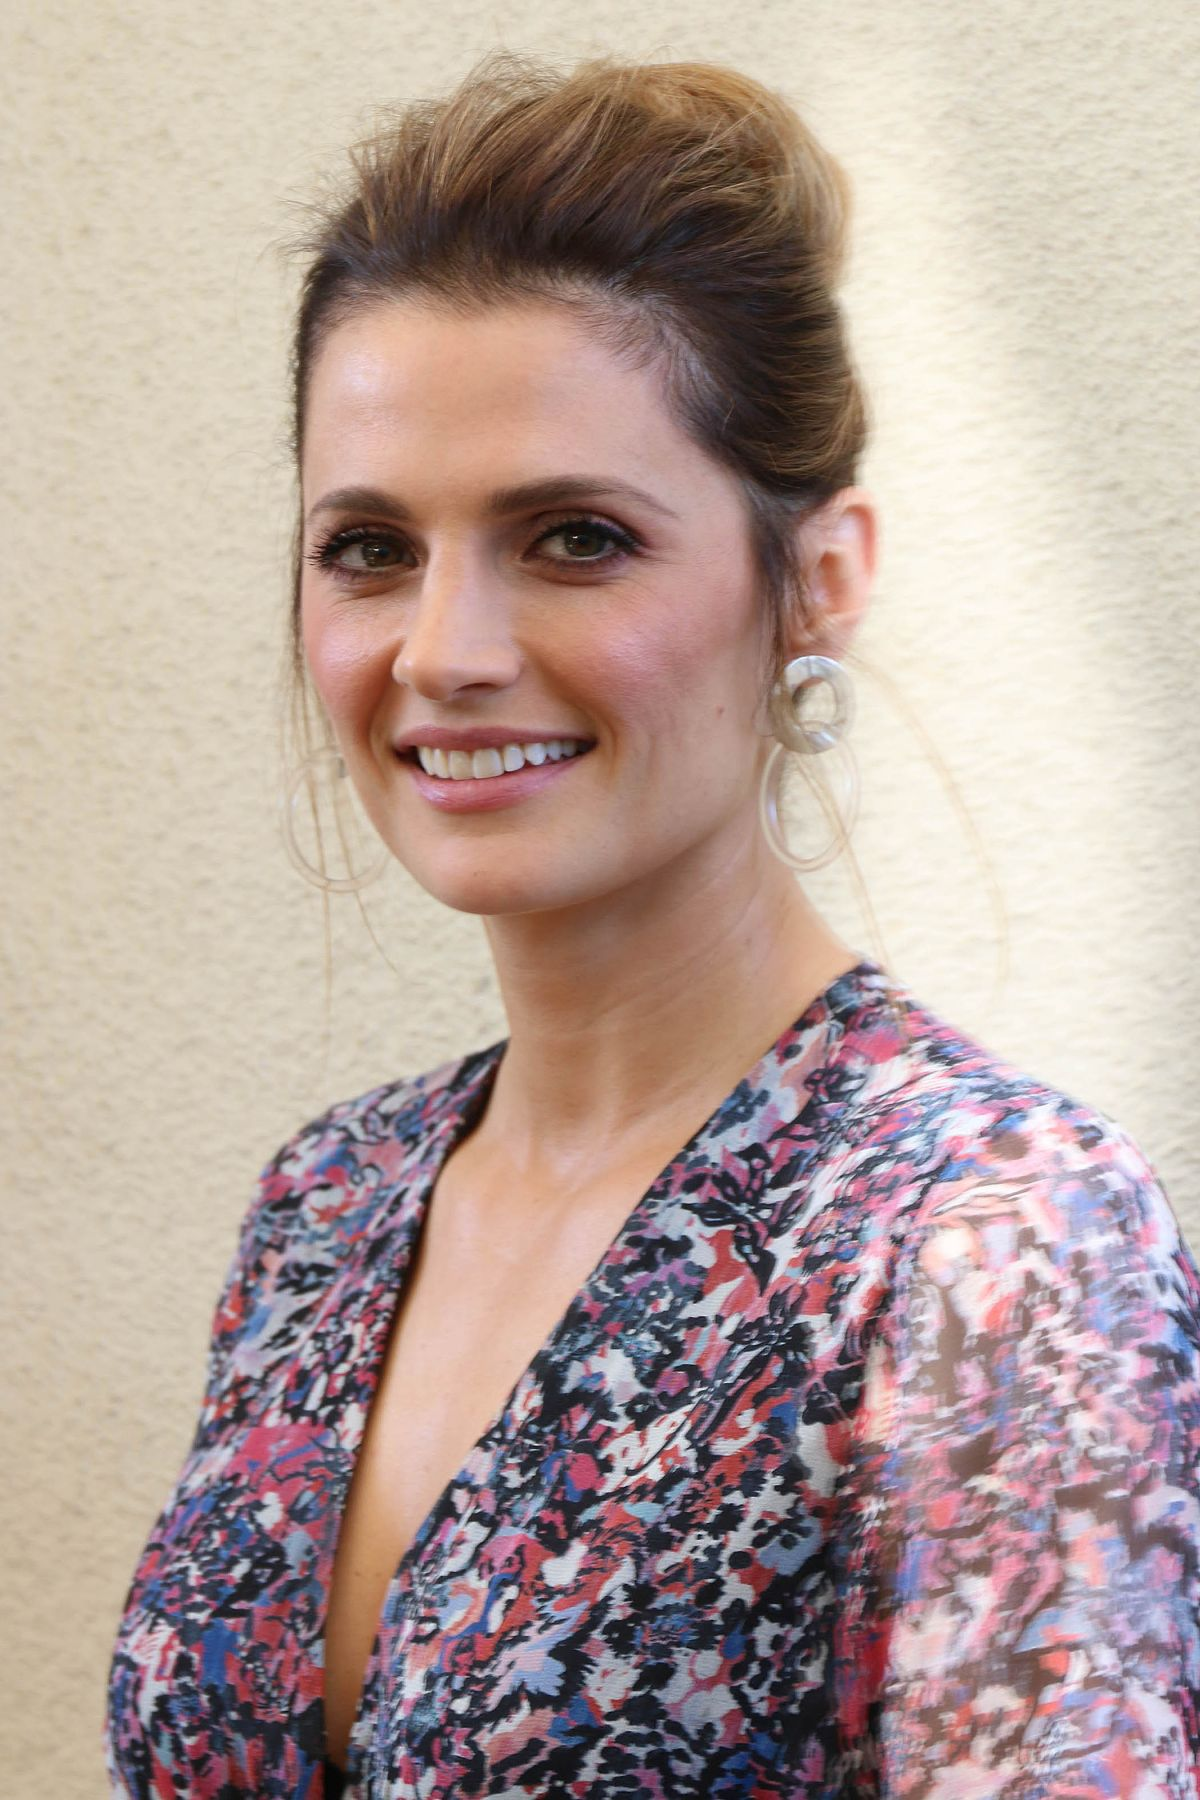 STANA KATIC at HFPA Offices in Los Angeles 01/31/2018